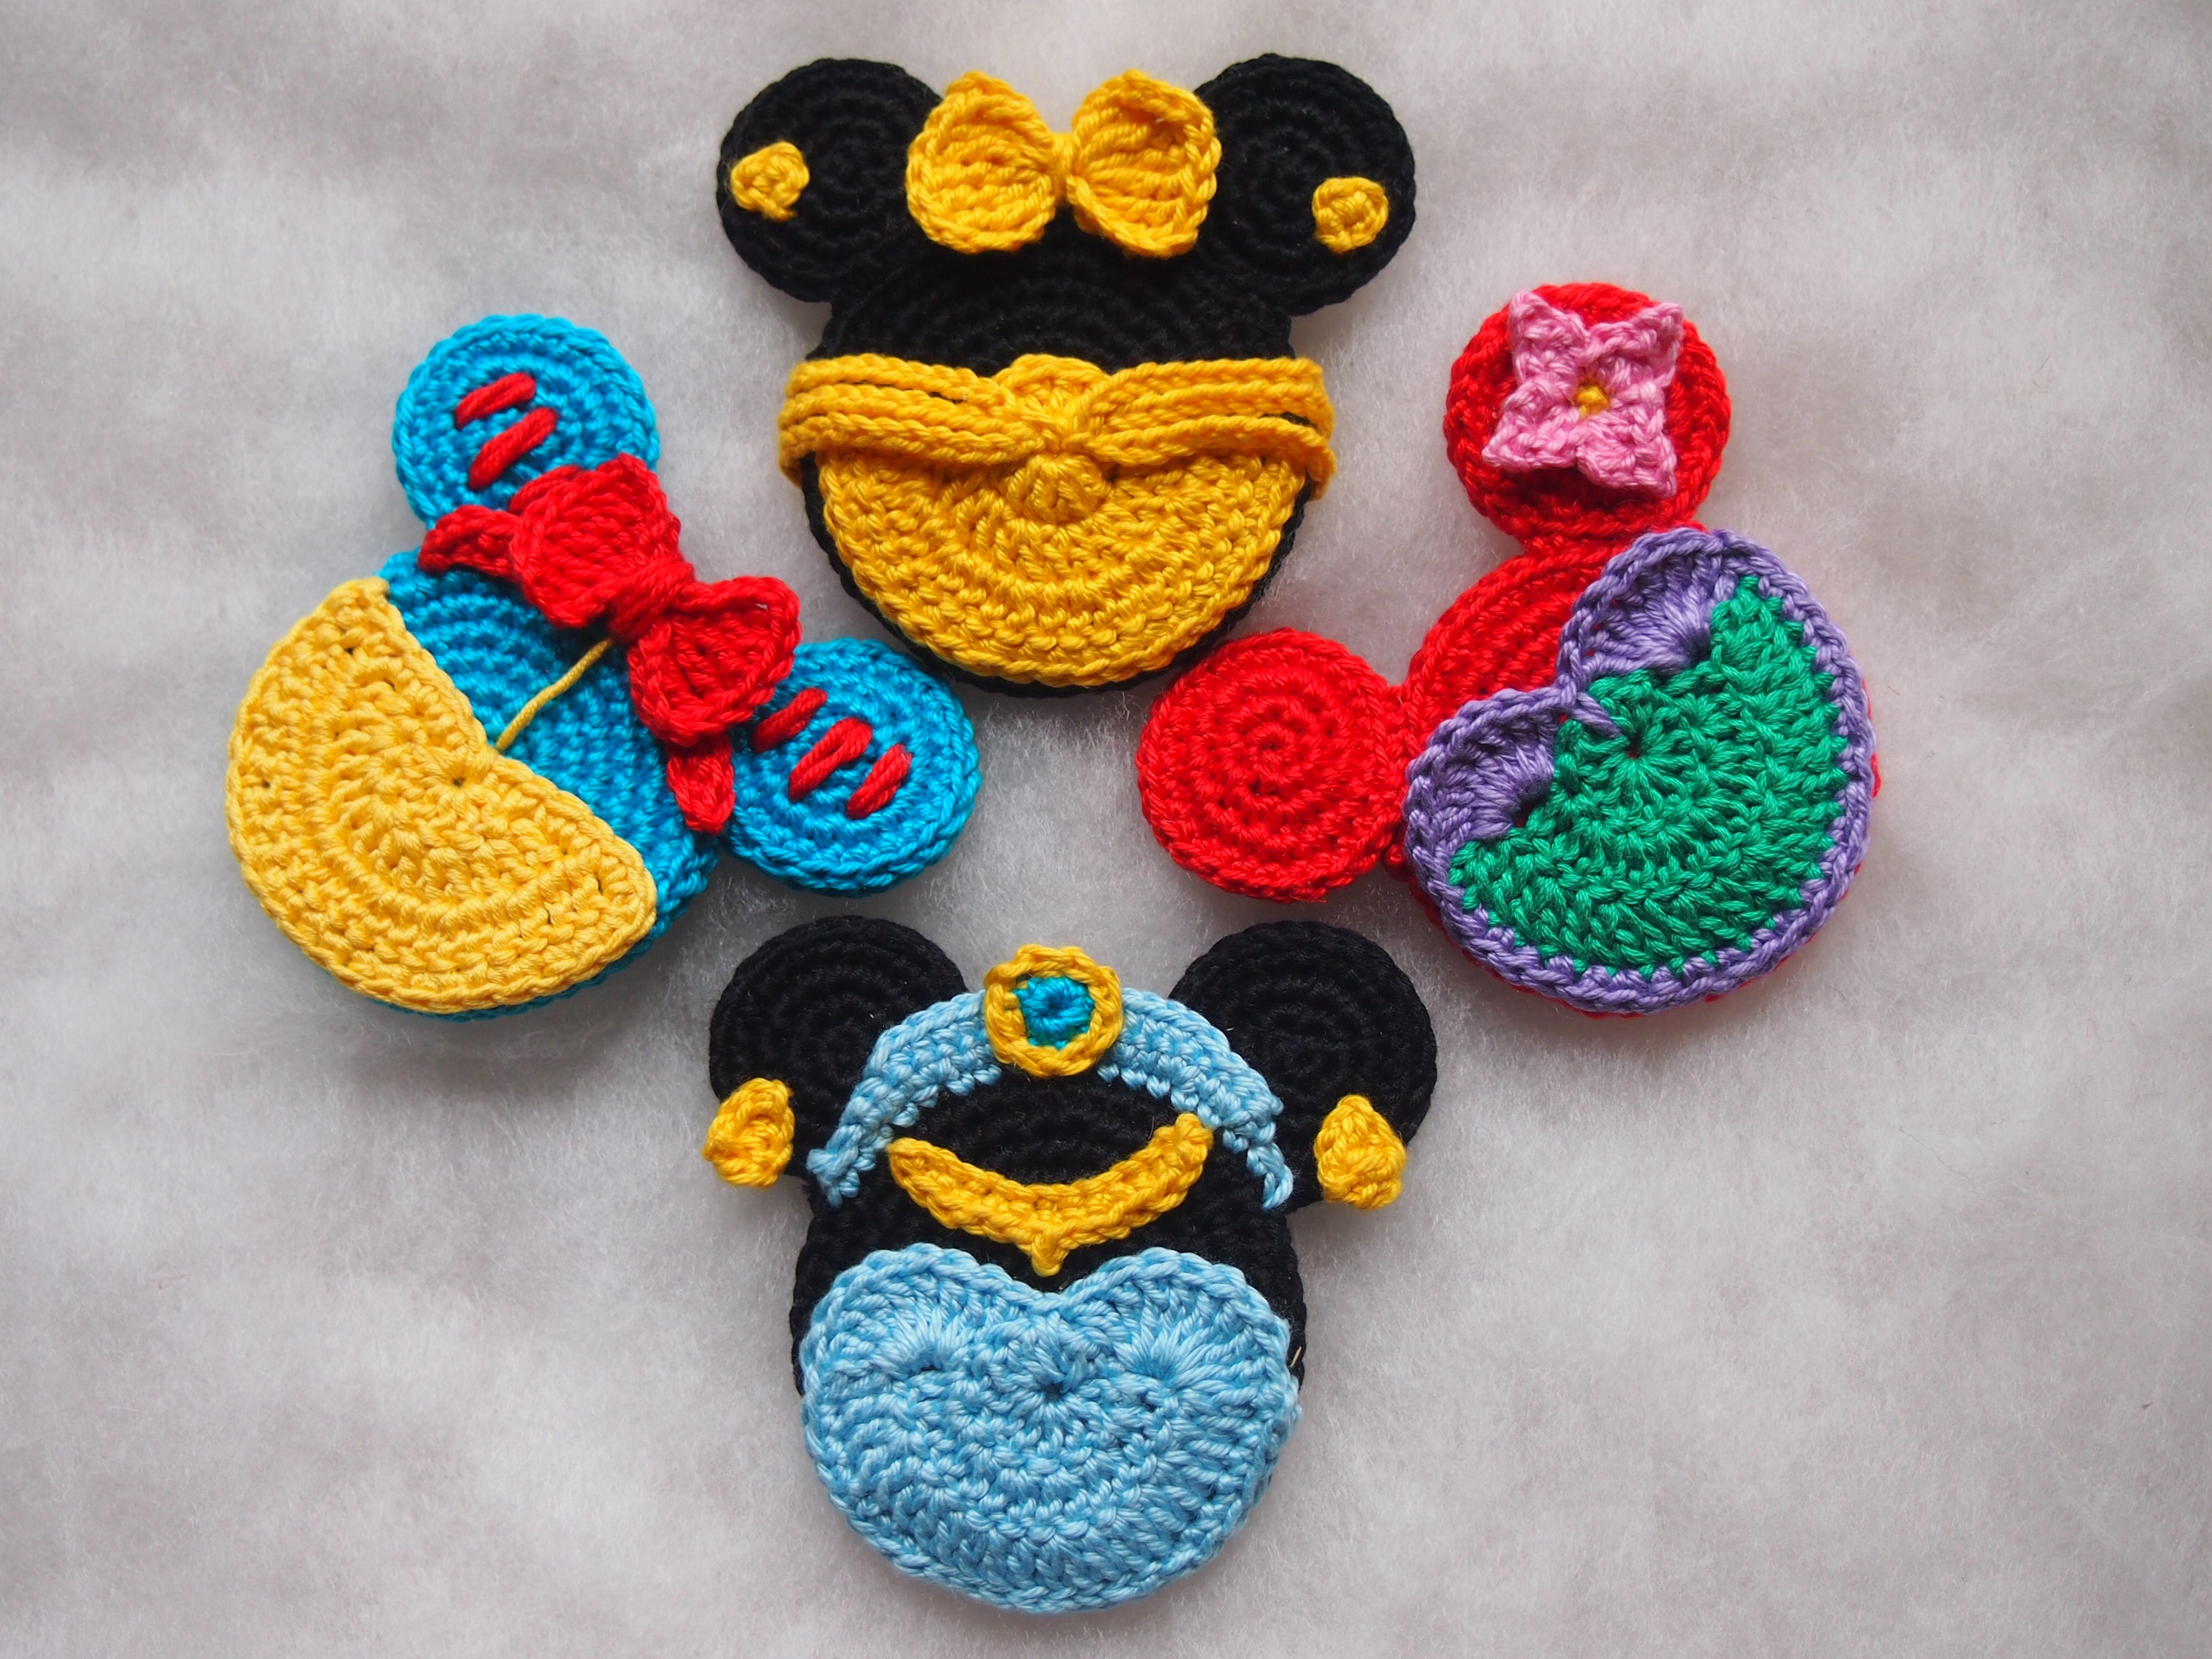 Disney minnie mouse crochet pattern snow white jasmine ariel disney minnie mouse crochet pattern snow white jasmine ariel and belle disney princess princess minnie head bankloansurffo Choice Image